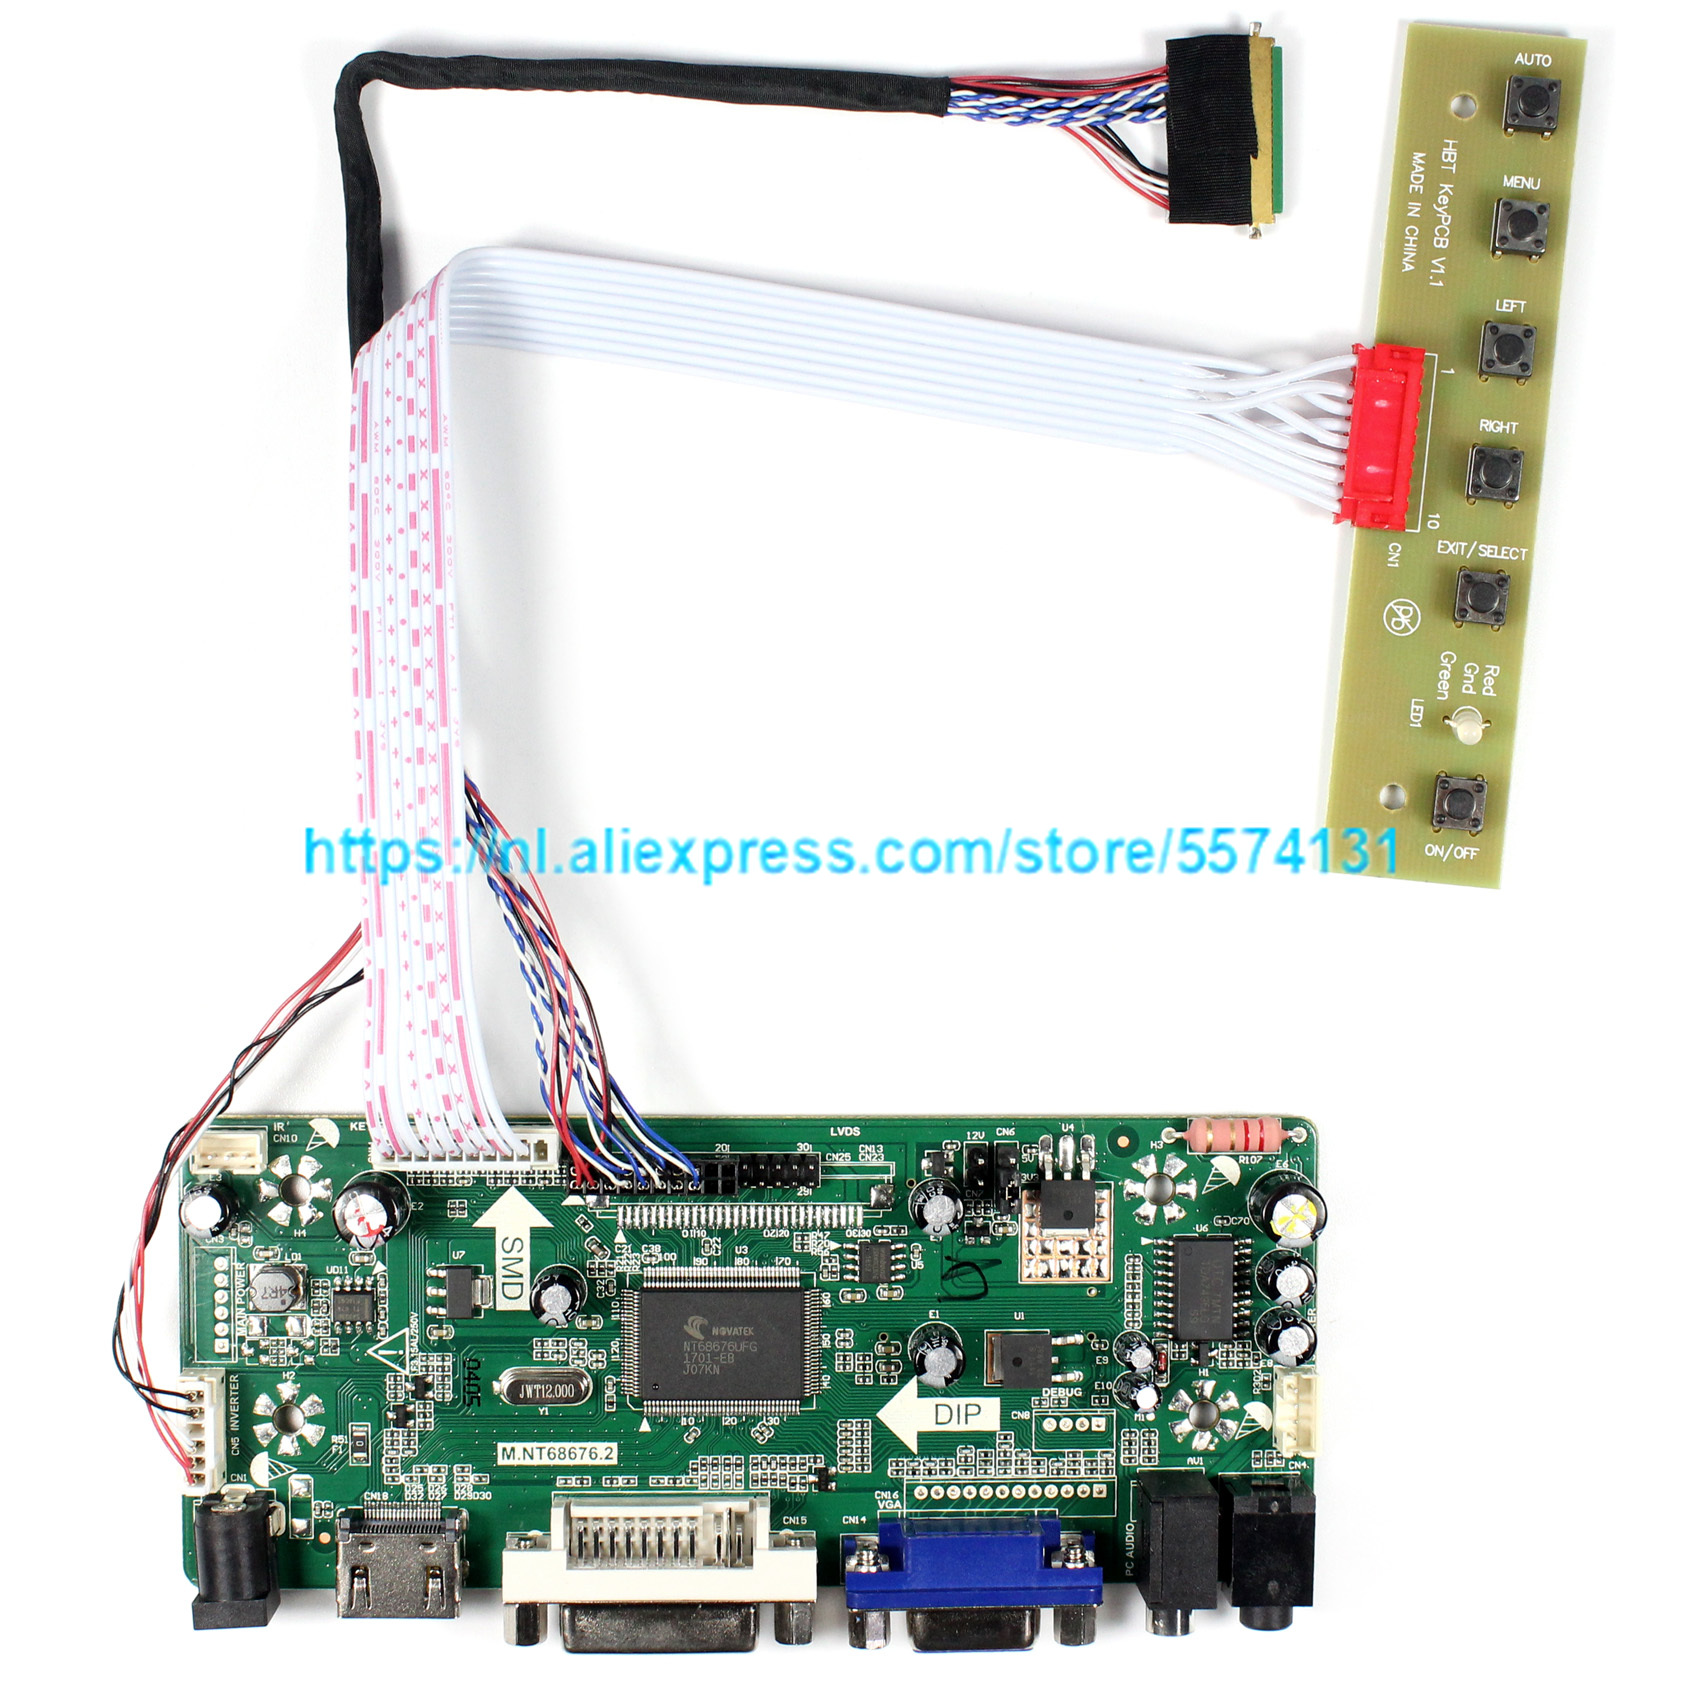 Control <font><b>Board</b></font> Monitor Kit for <font><b>B156XW02</b></font> V1 / <font><b>V3</b></font> / V6 <font><b>B156XW02</b></font> V7 HDMI + DVI + VGA LCD LED Screen <font><b>Controller</b></font> <font><b>Board</b></font> Driver image